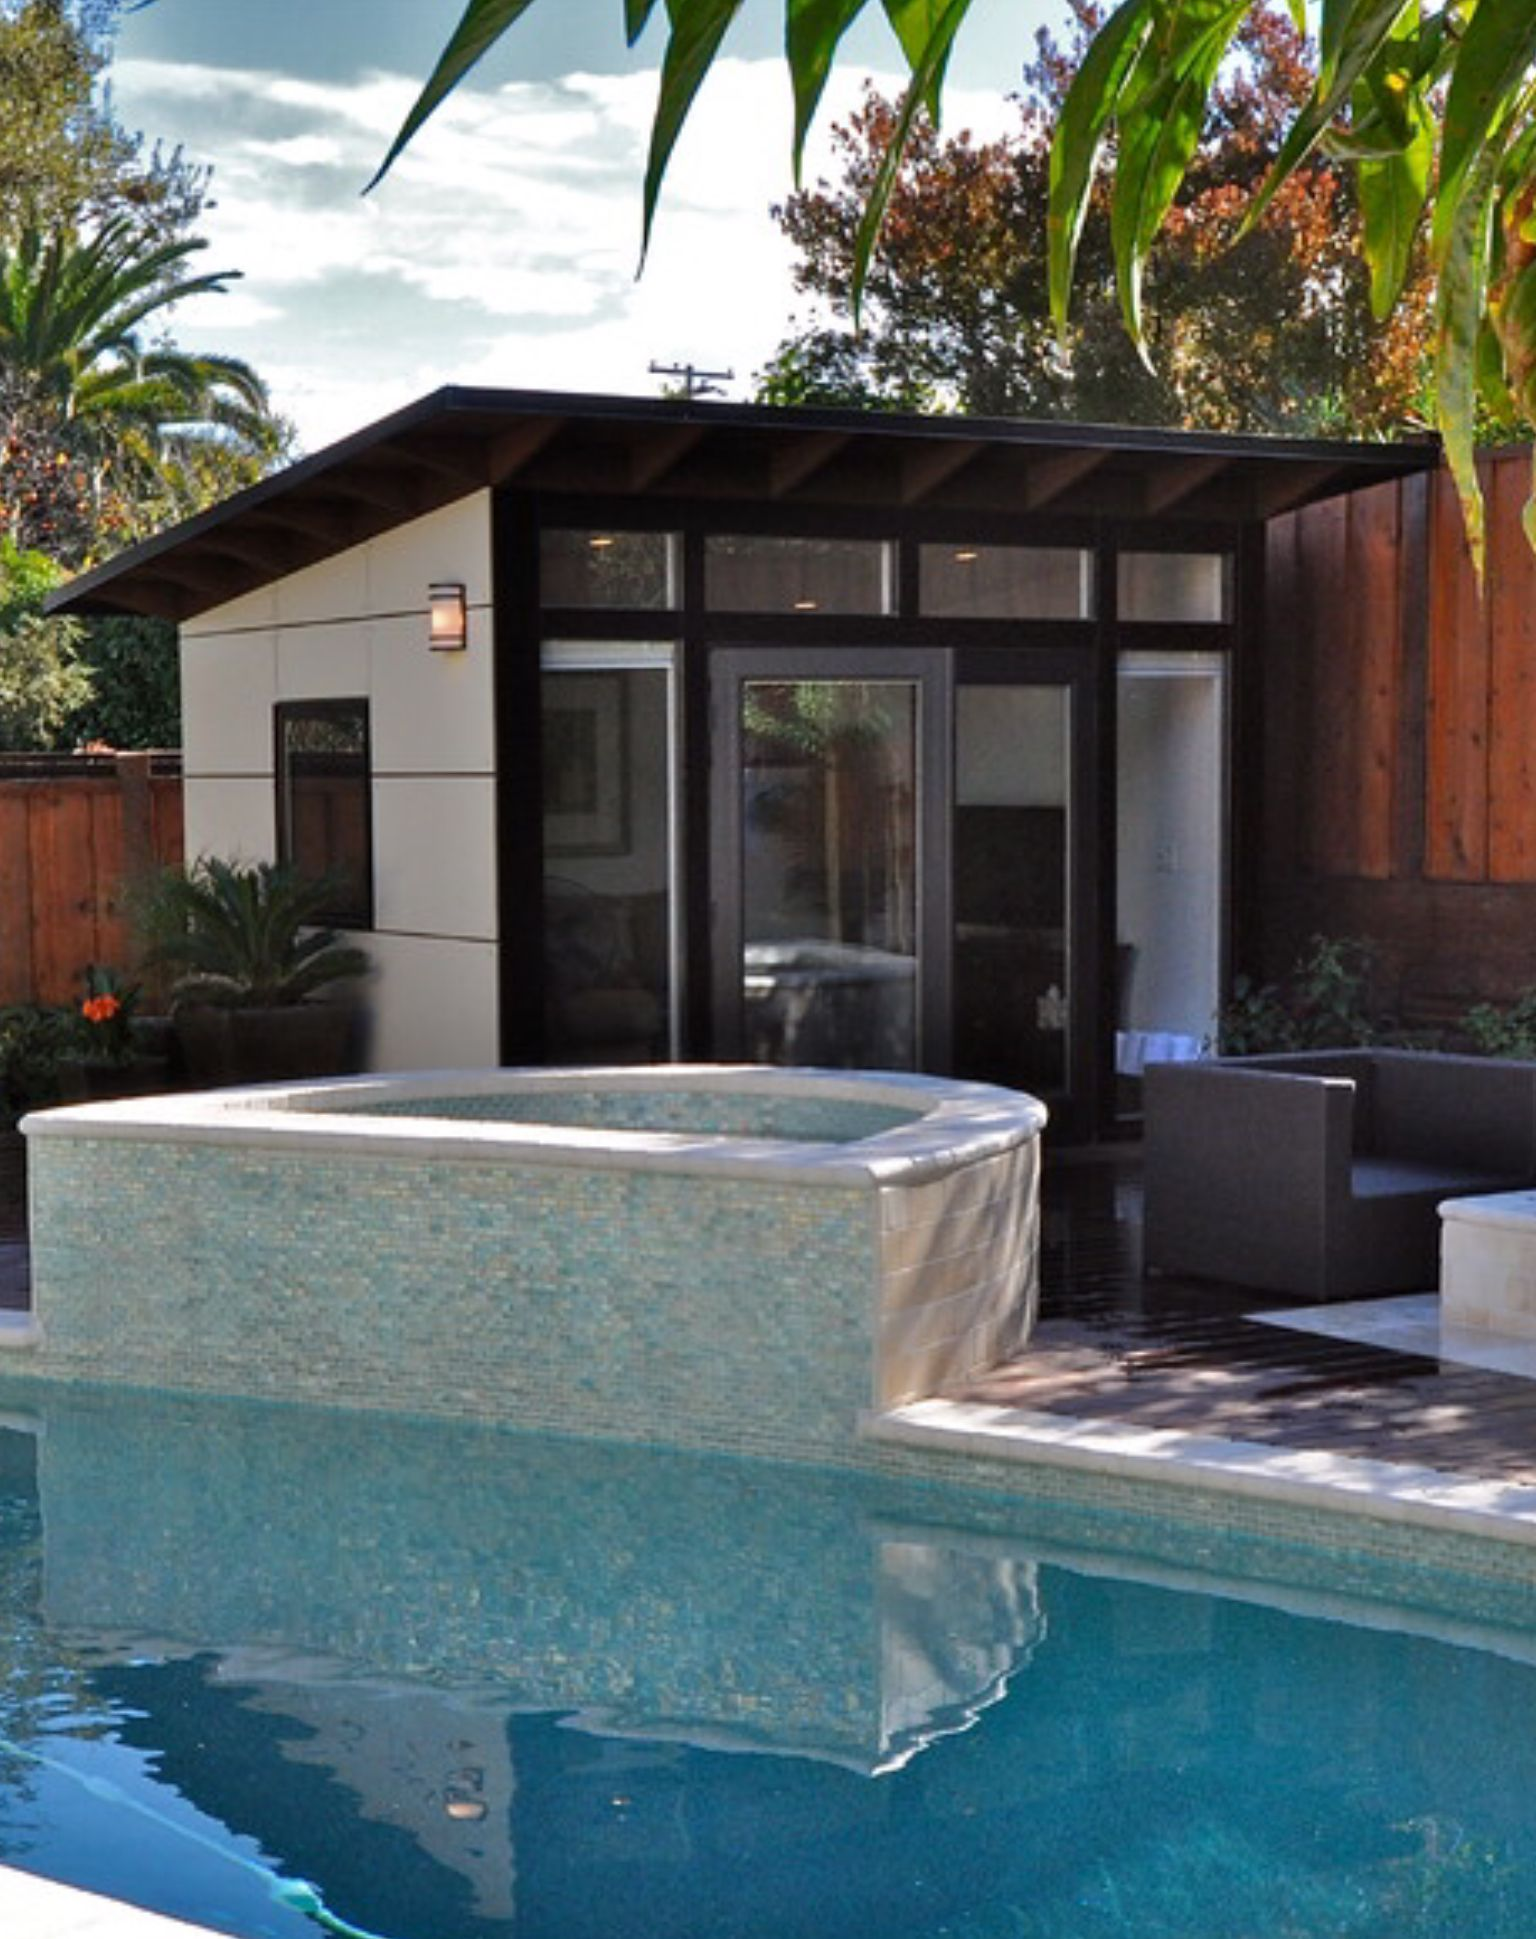 10x16 Modern Pool House Casita Guest House Pool Houses Pool House Designs Small Pool Houses